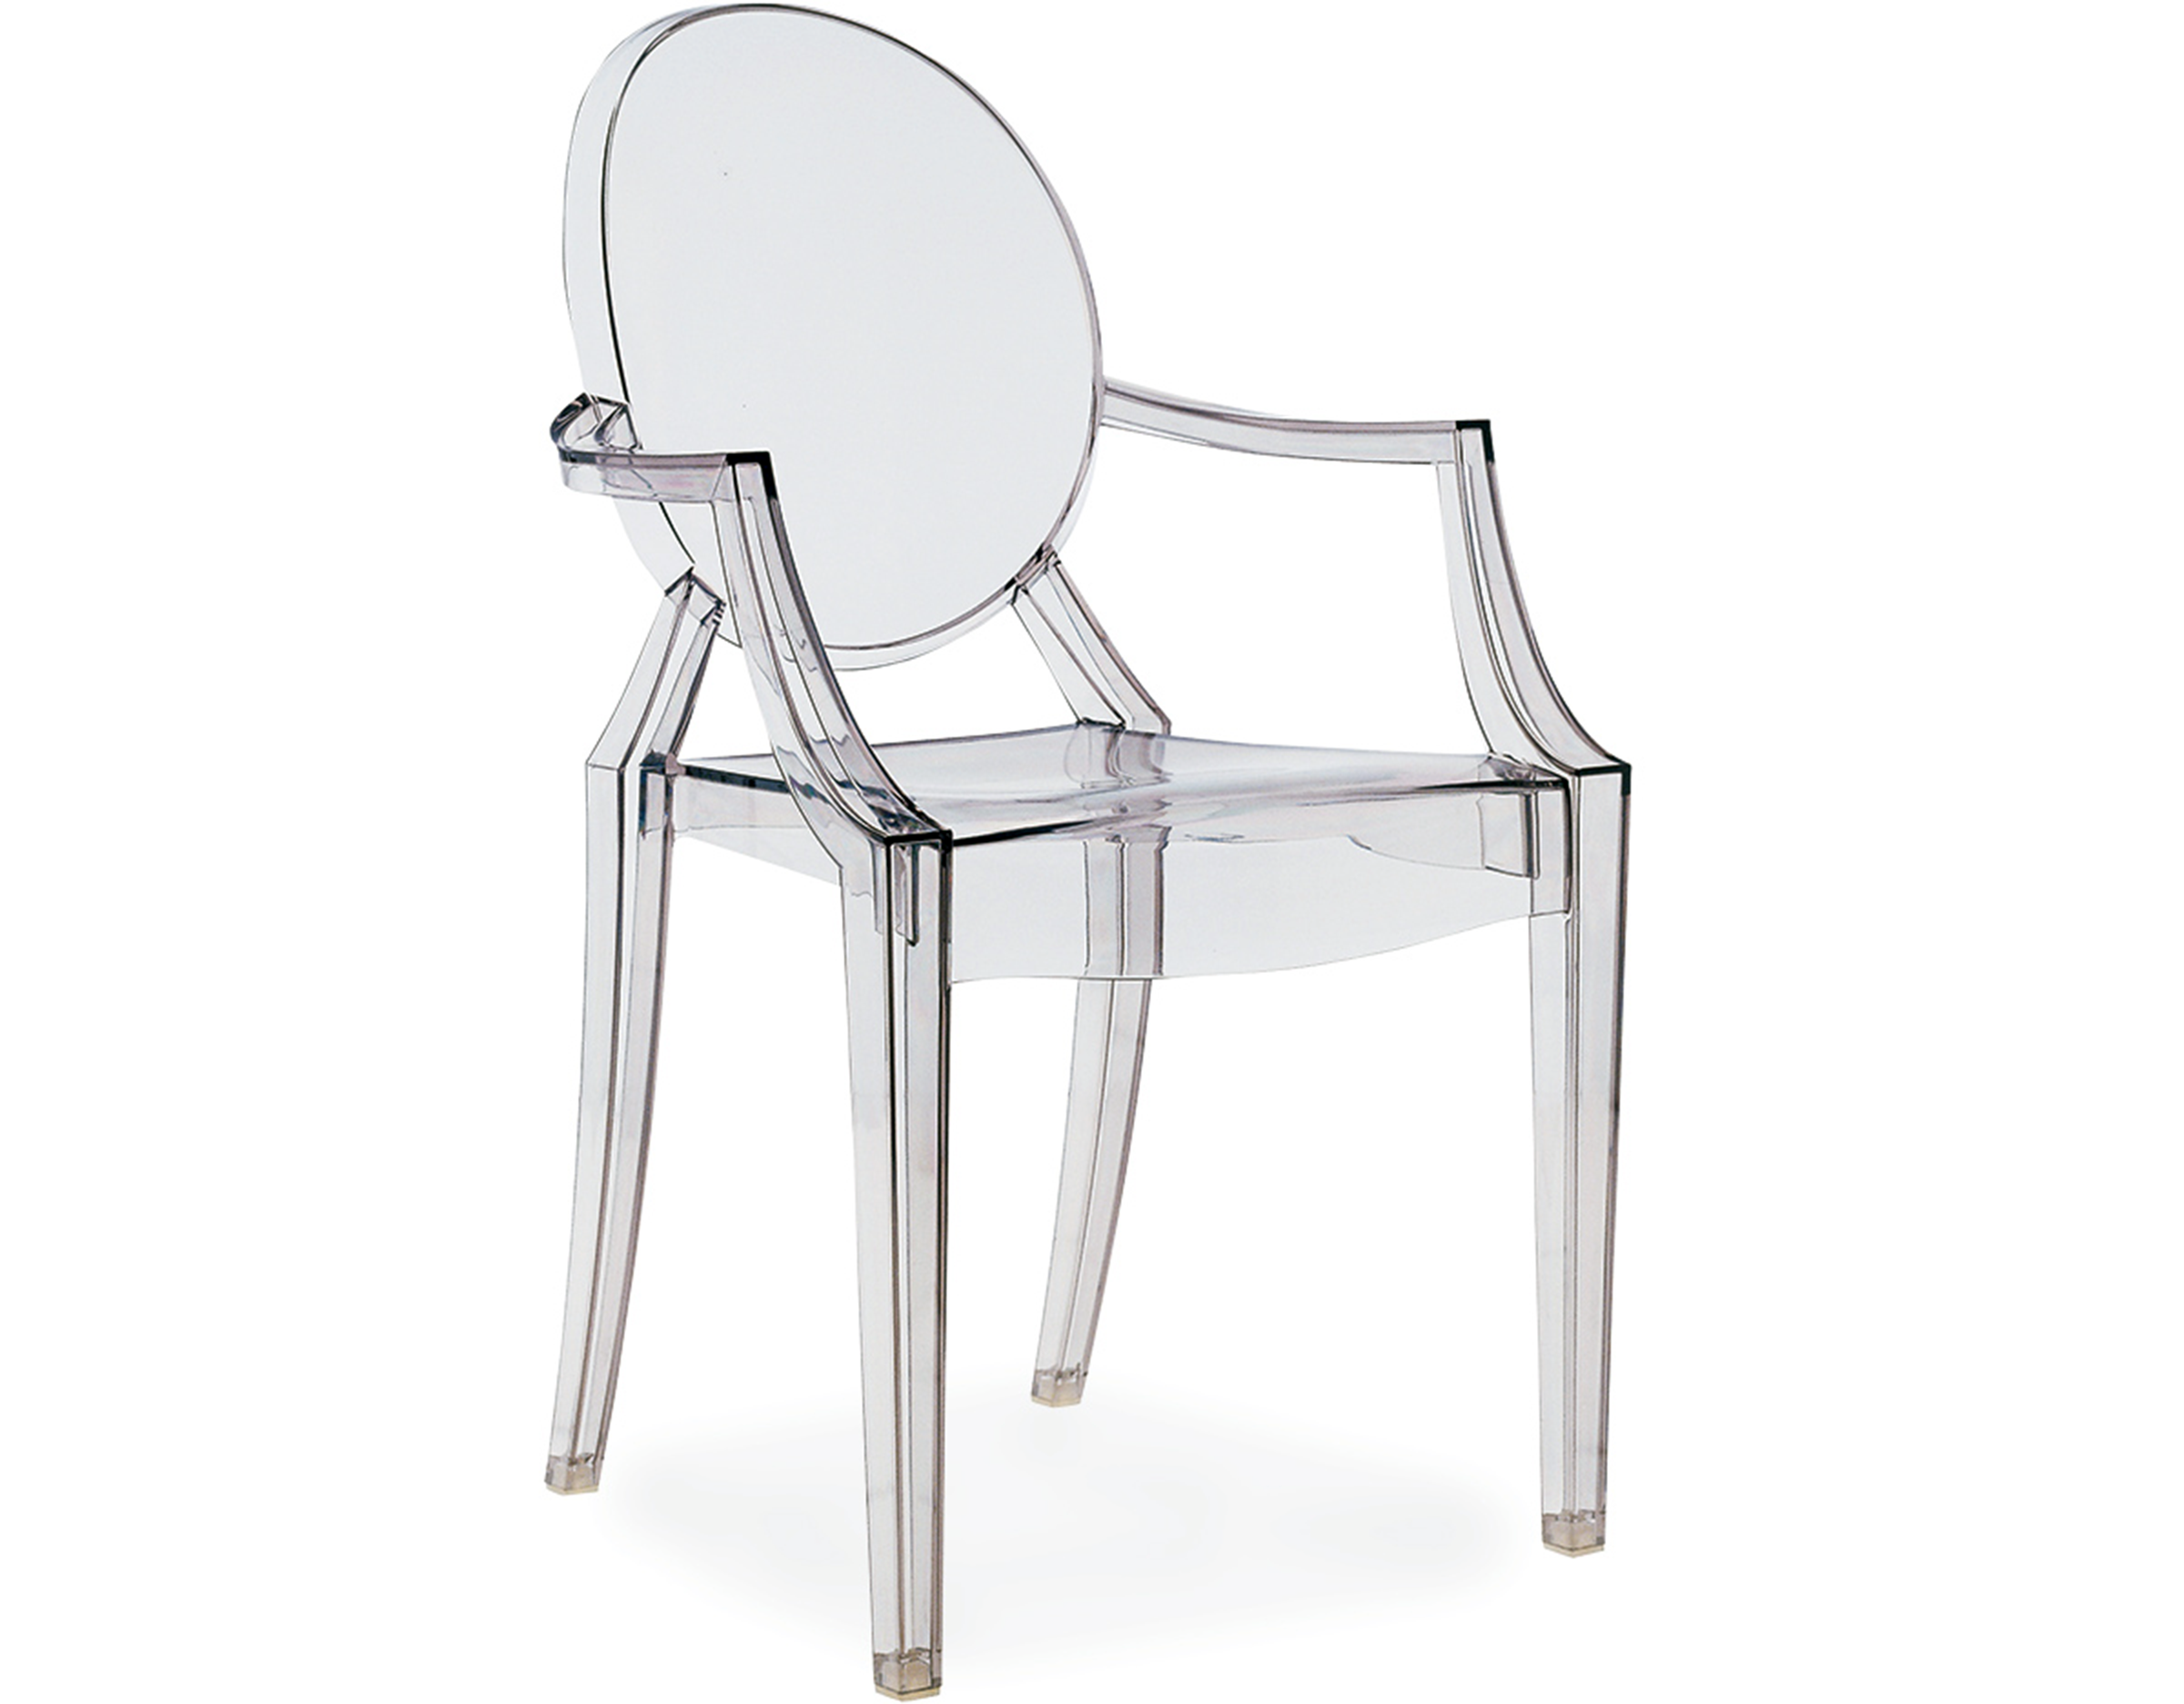 philippe starke ghost chair